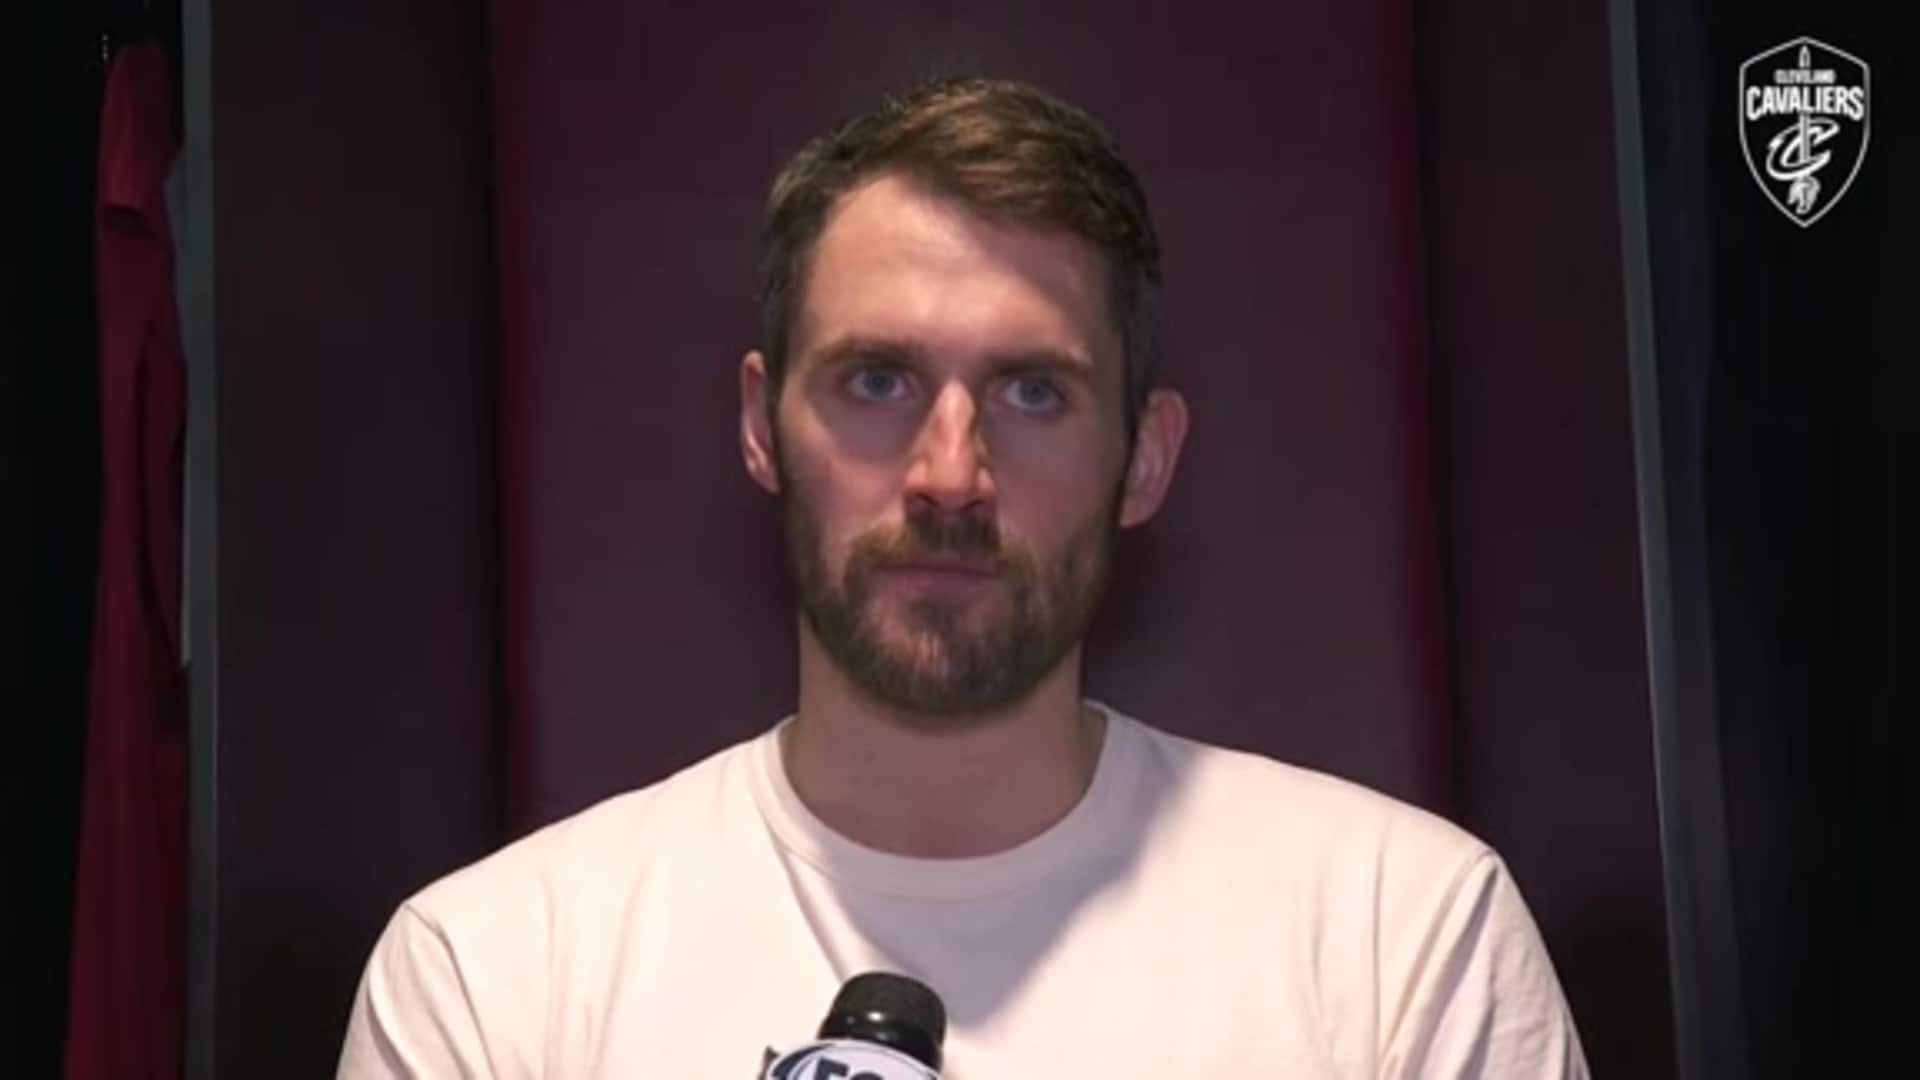 Cavs vs. Bulls Postgame: Kevin Love